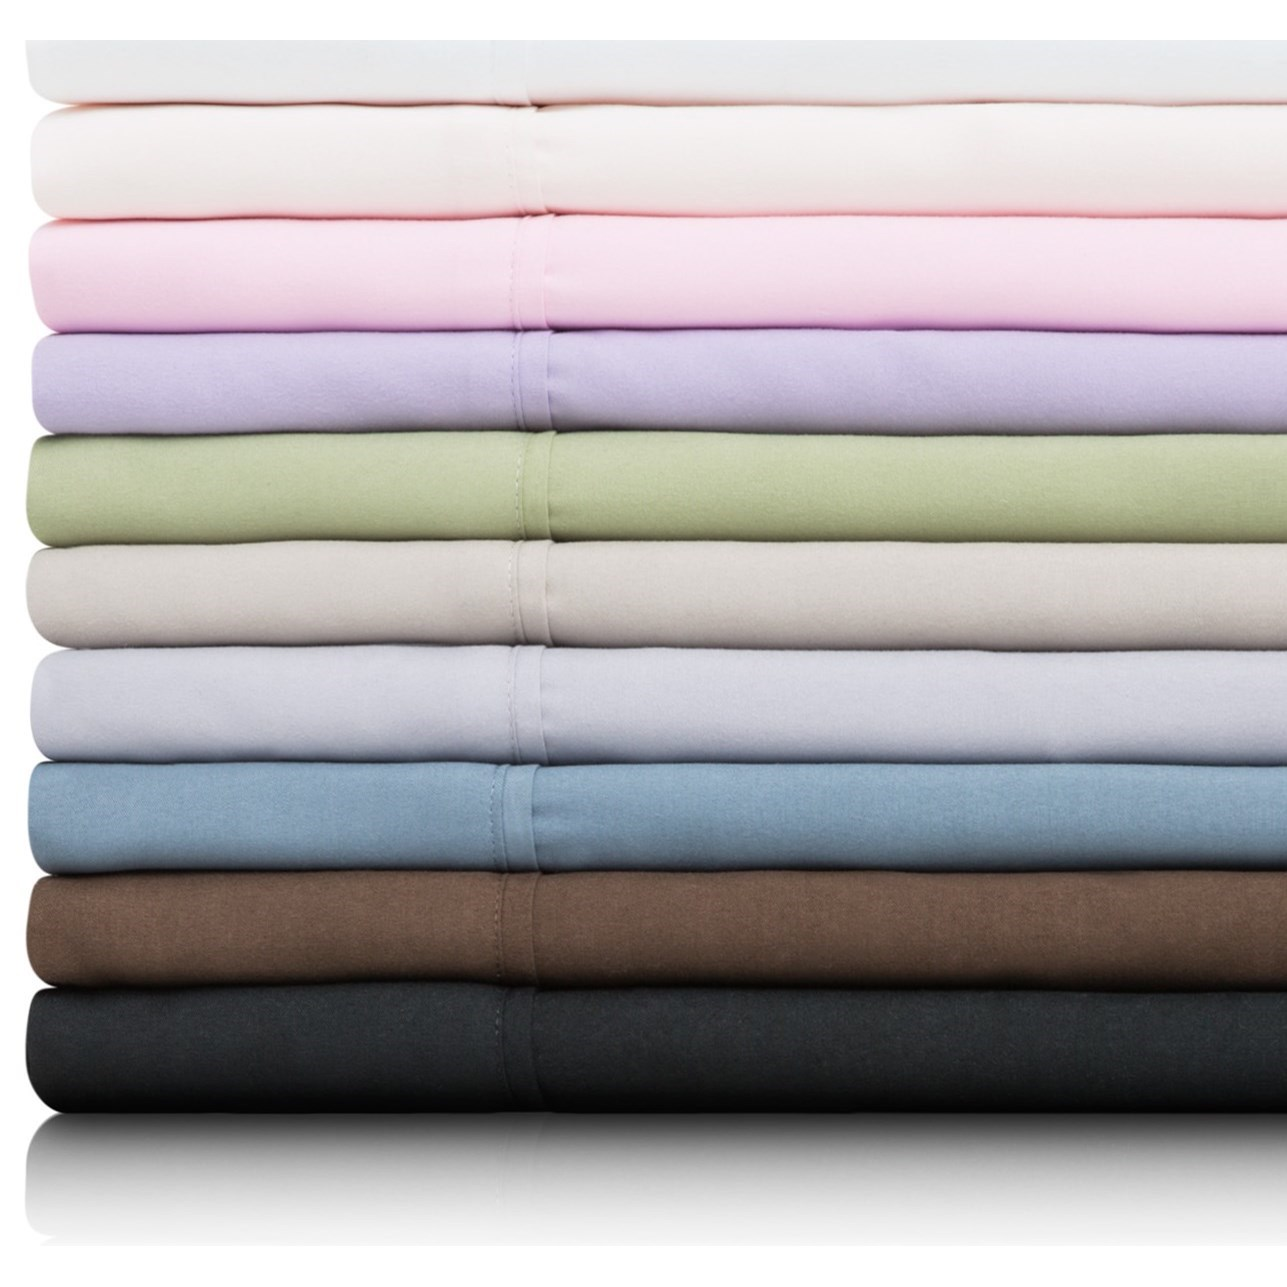 Malouf Brushed Microfiber Twin XL Woven™ Brushed Microfiber Sheet Set - Item Number: MA90TXLIMS